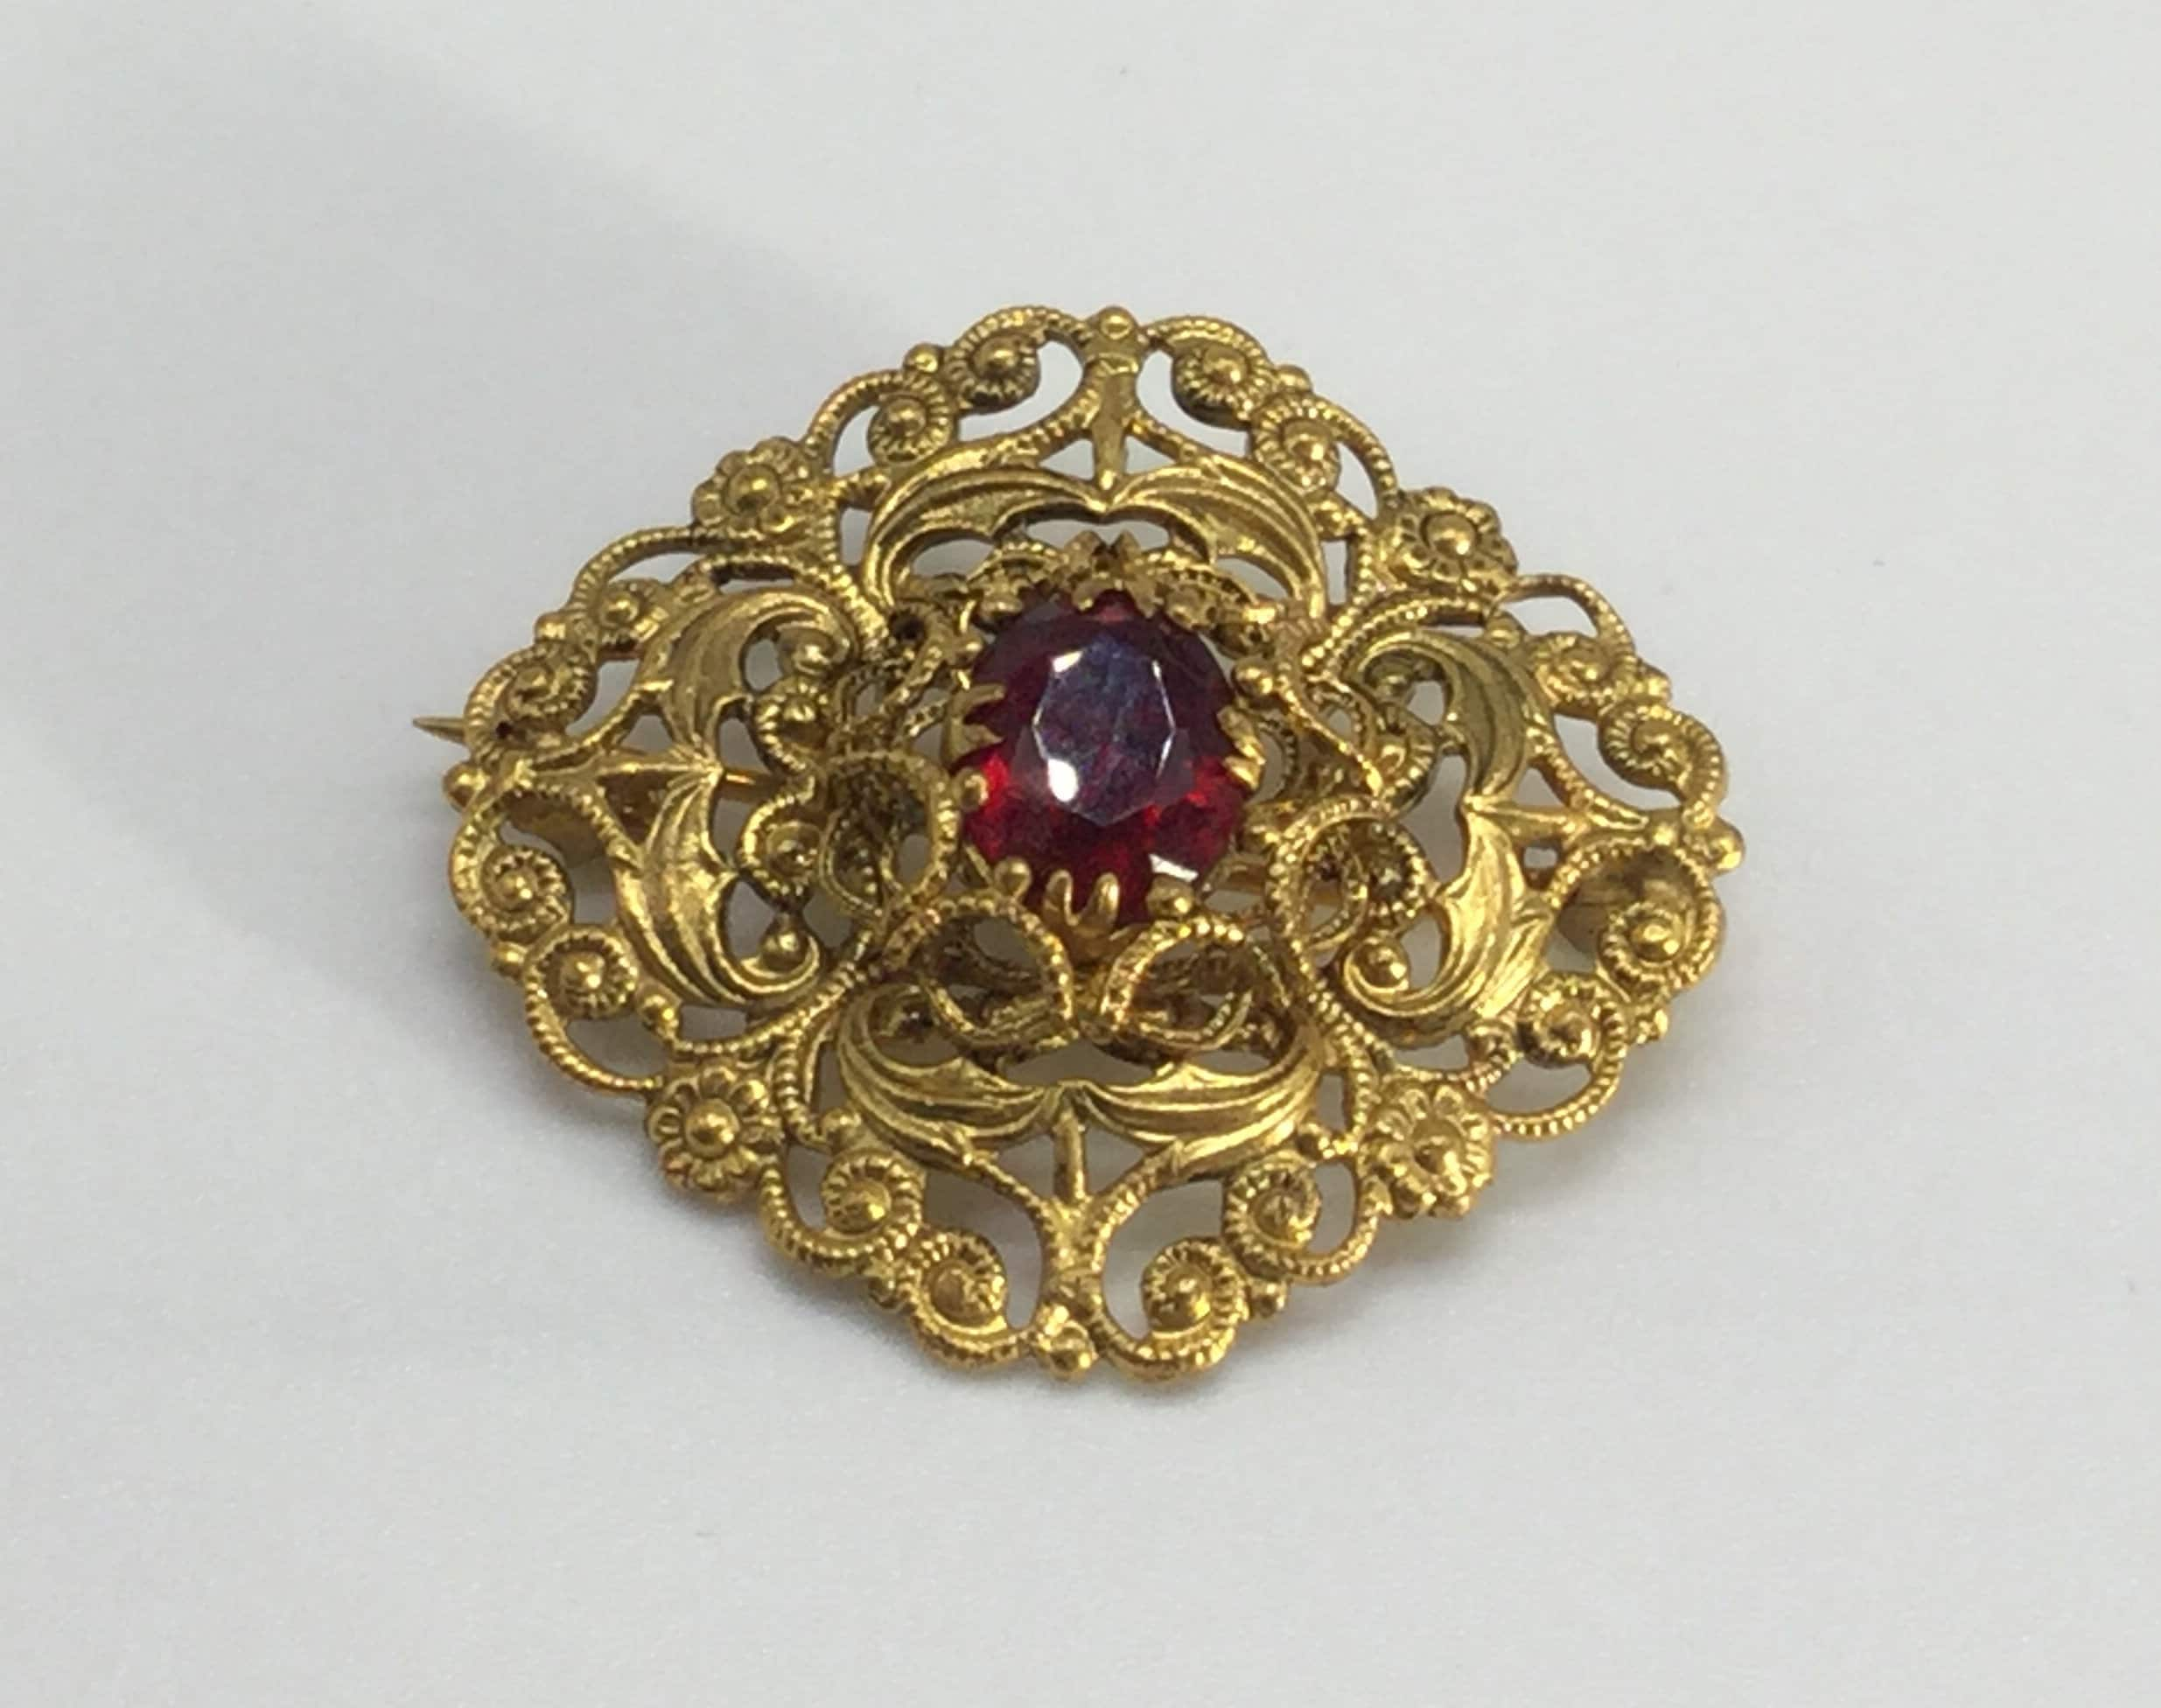 c4762ac19 Beautiful Bohemian Czech Ruby Red Glass and Gold Tone Filigree Art Deco  Brooch Vintage Retro Jewellery from the 1930's